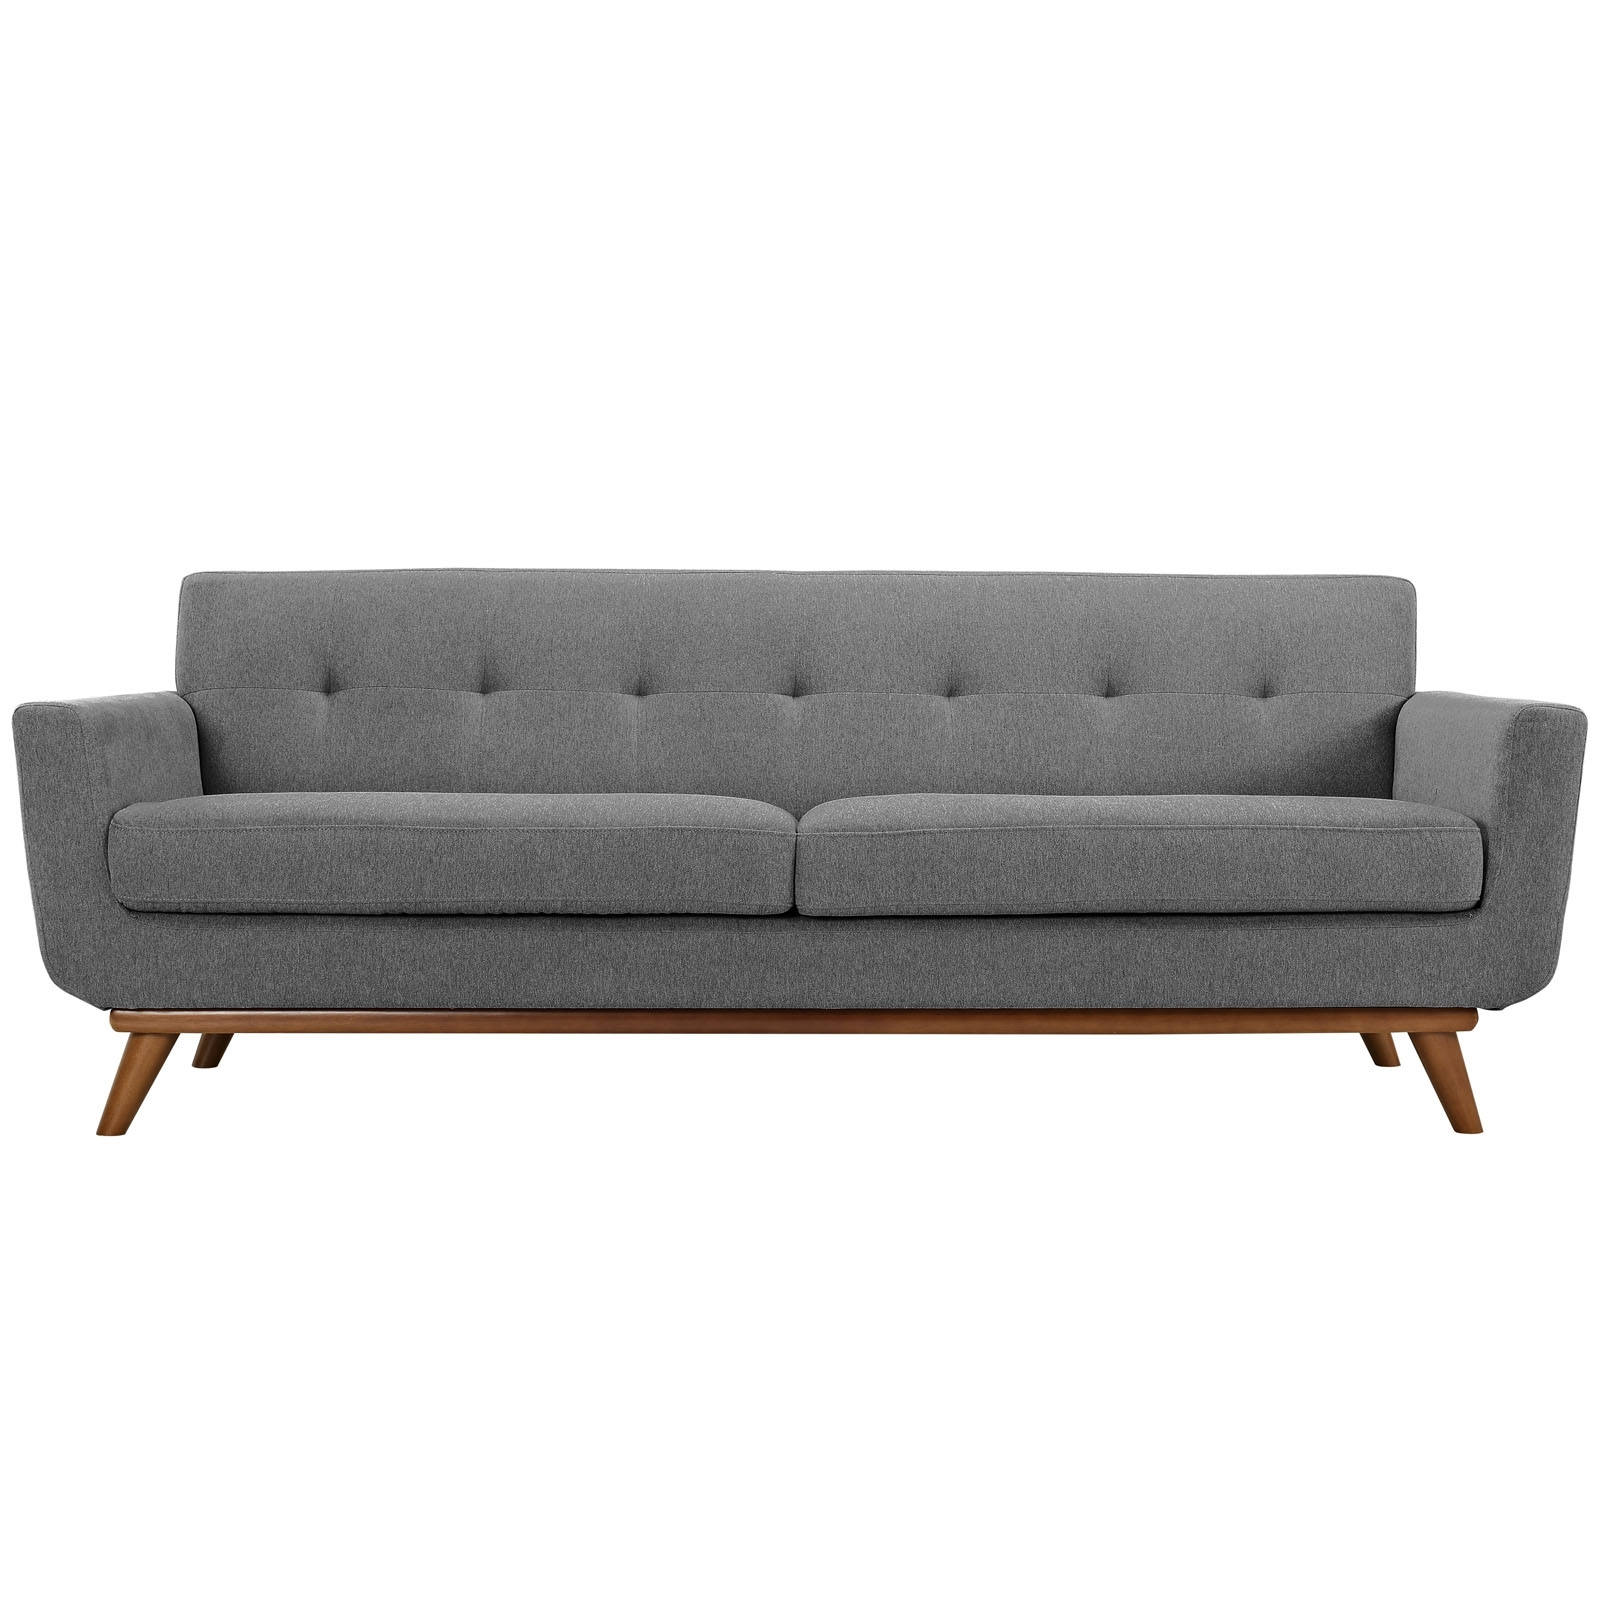 Sofas & Couches - Walmart with Sectional Sofas Under 700